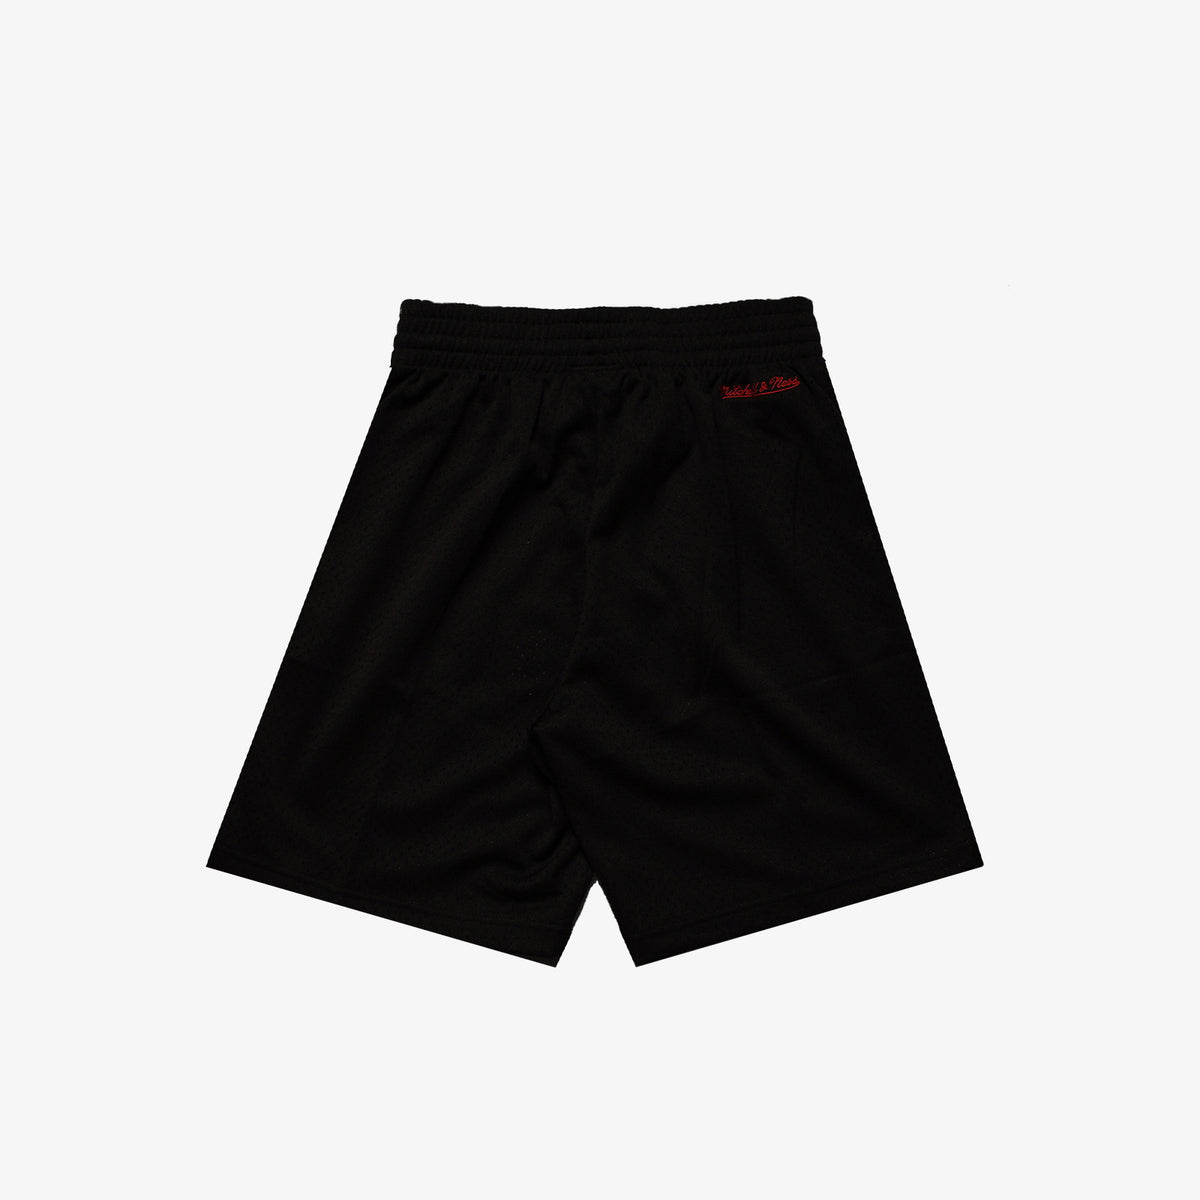 Chicago Bulls Mesh Court Shorts Original - Black